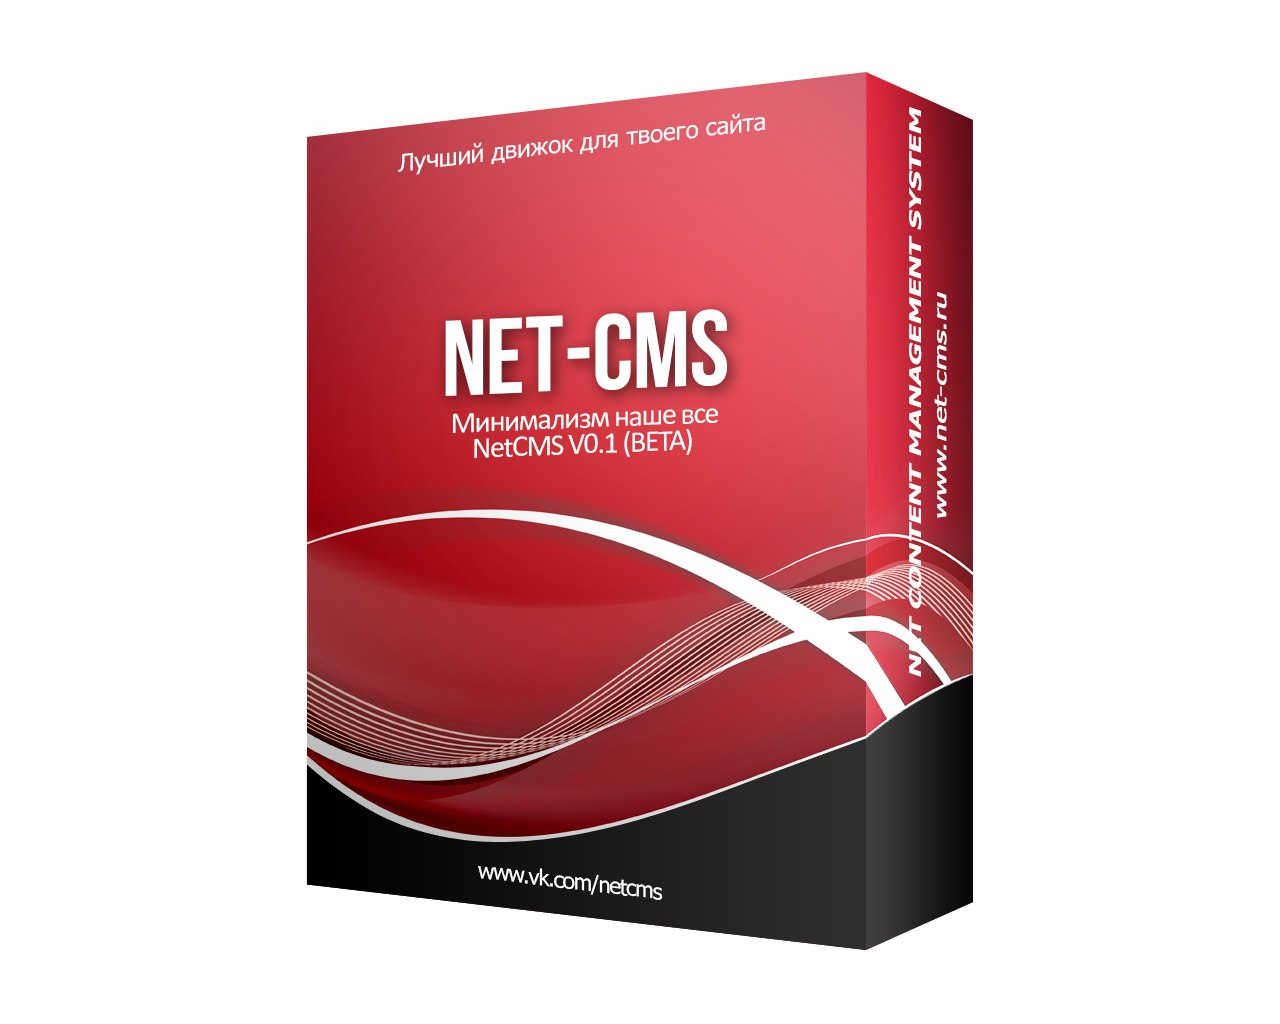 NetCMS V0.1 (BETA) - Система управления сайтом